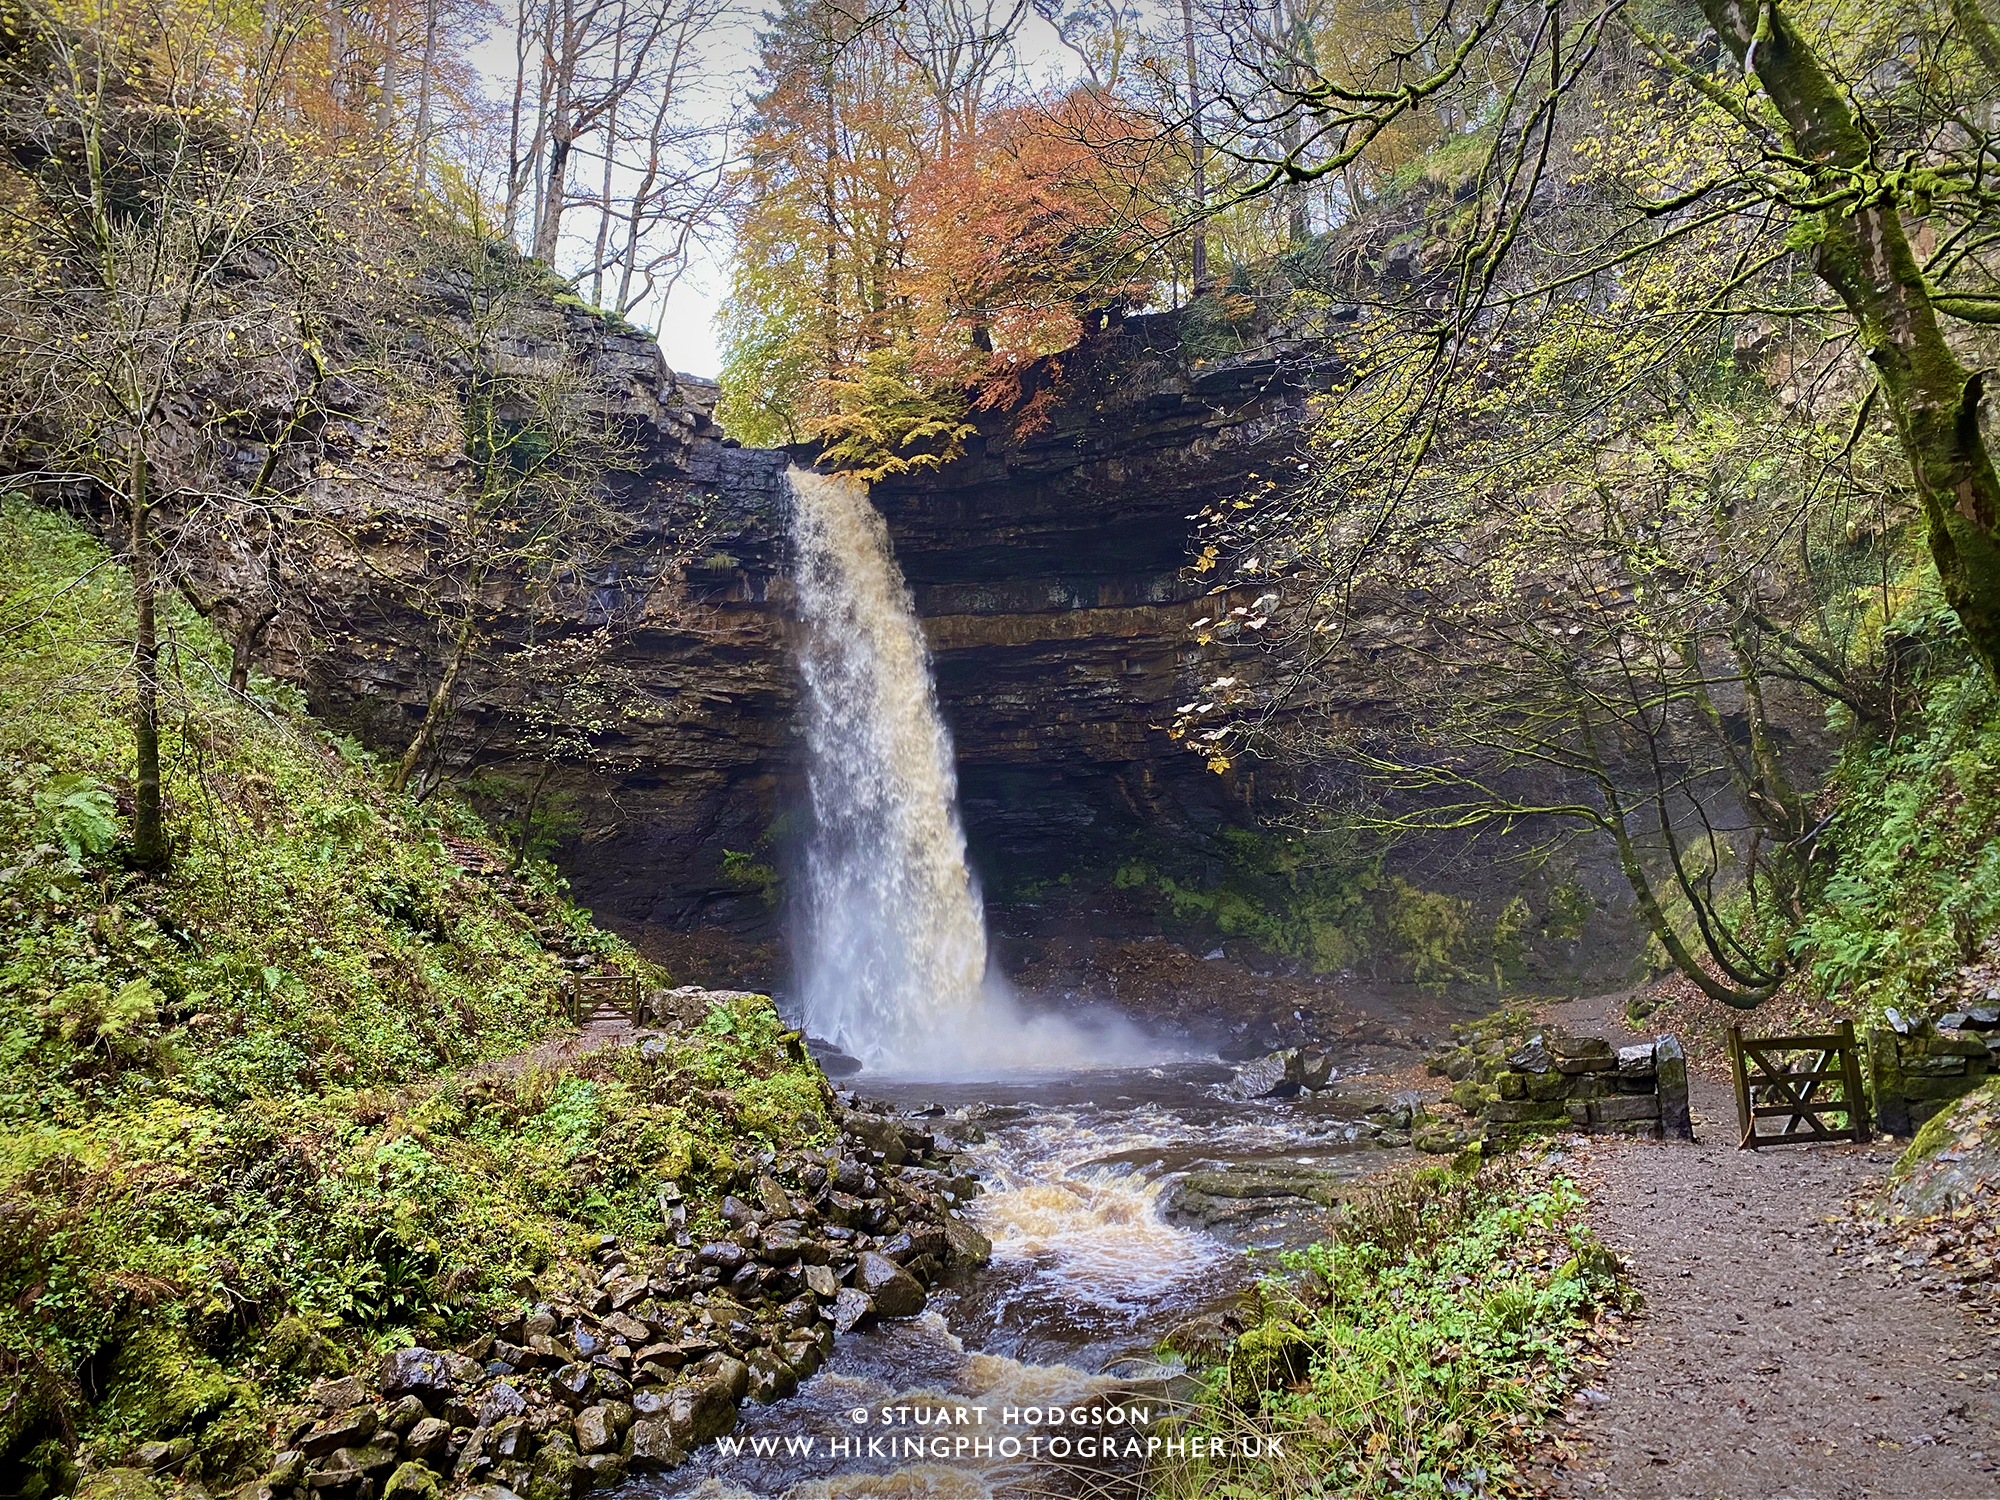 Hardraw Force waterfall walk short highest tallest waterfall England Yorkshire Dales map route Hawes